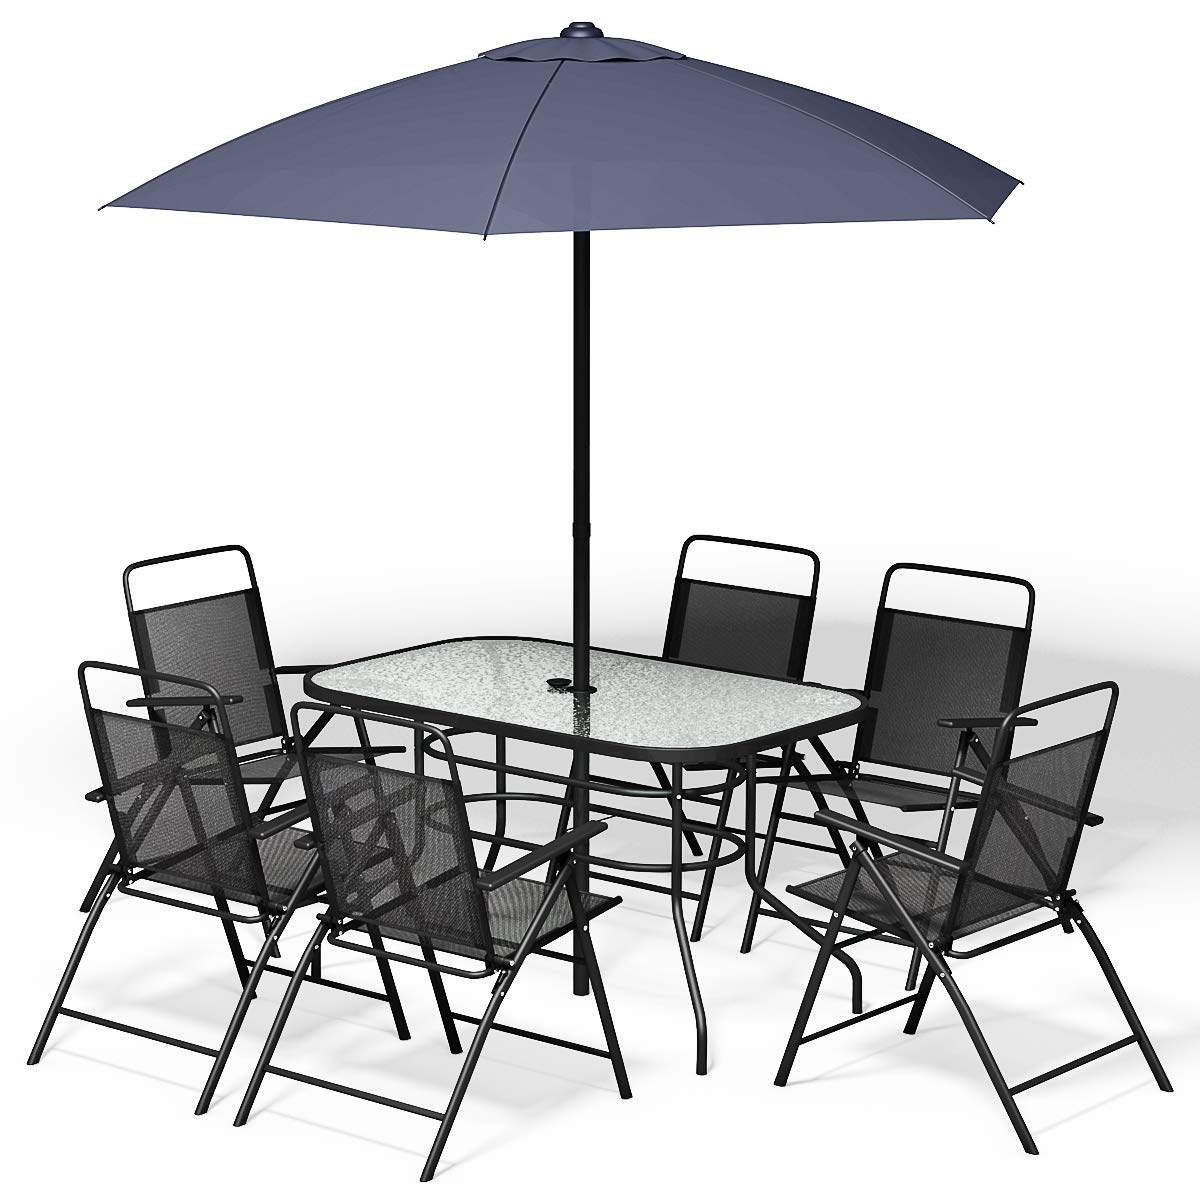 Pleasant Giantex 8Pcs Patio Garden Set Furniture 6 Folding Chairs Table With Umbrella Gray New Machost Co Dining Chair Design Ideas Machostcouk